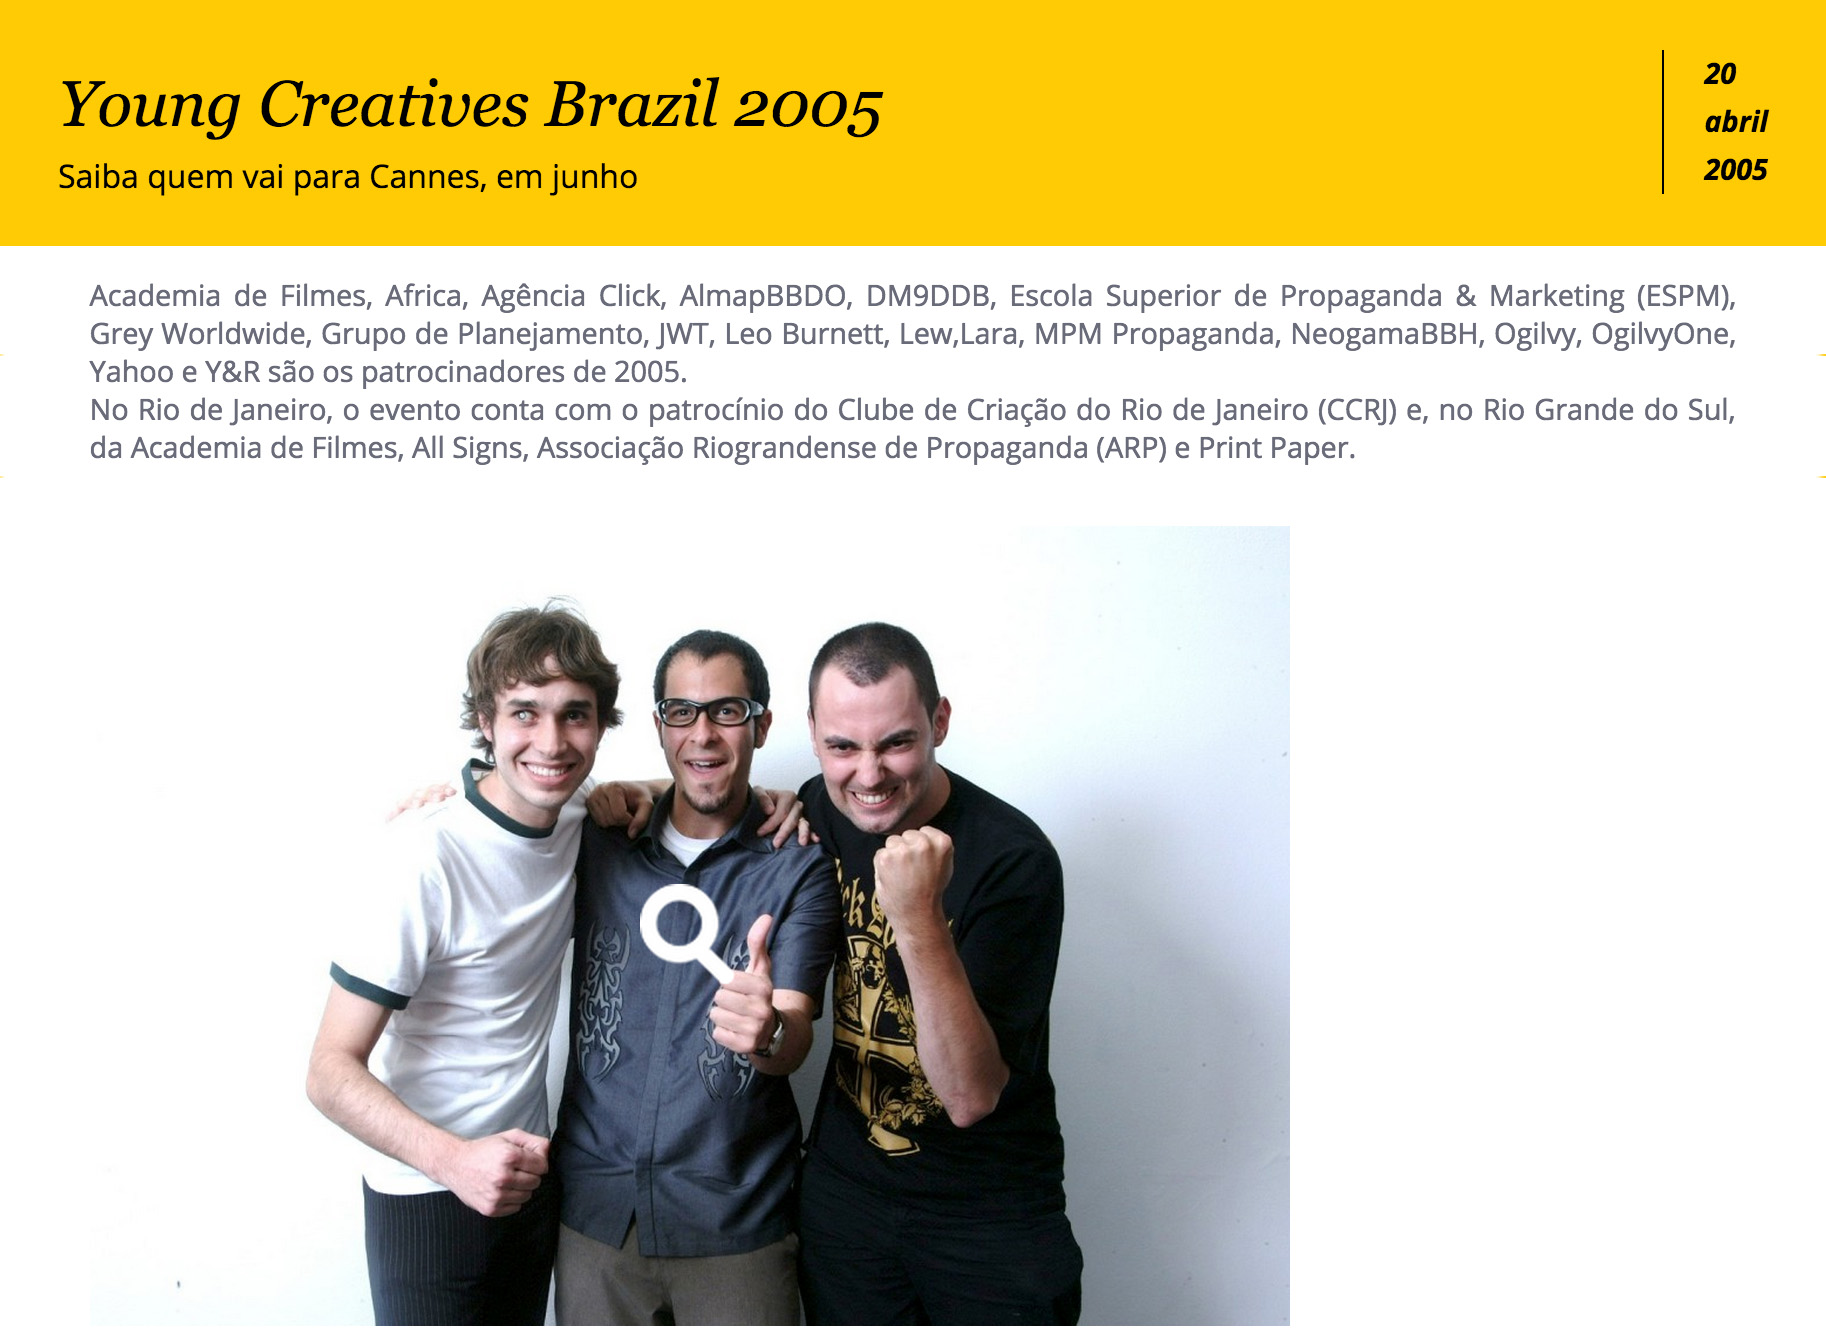 Young Creatives Brazil 2005